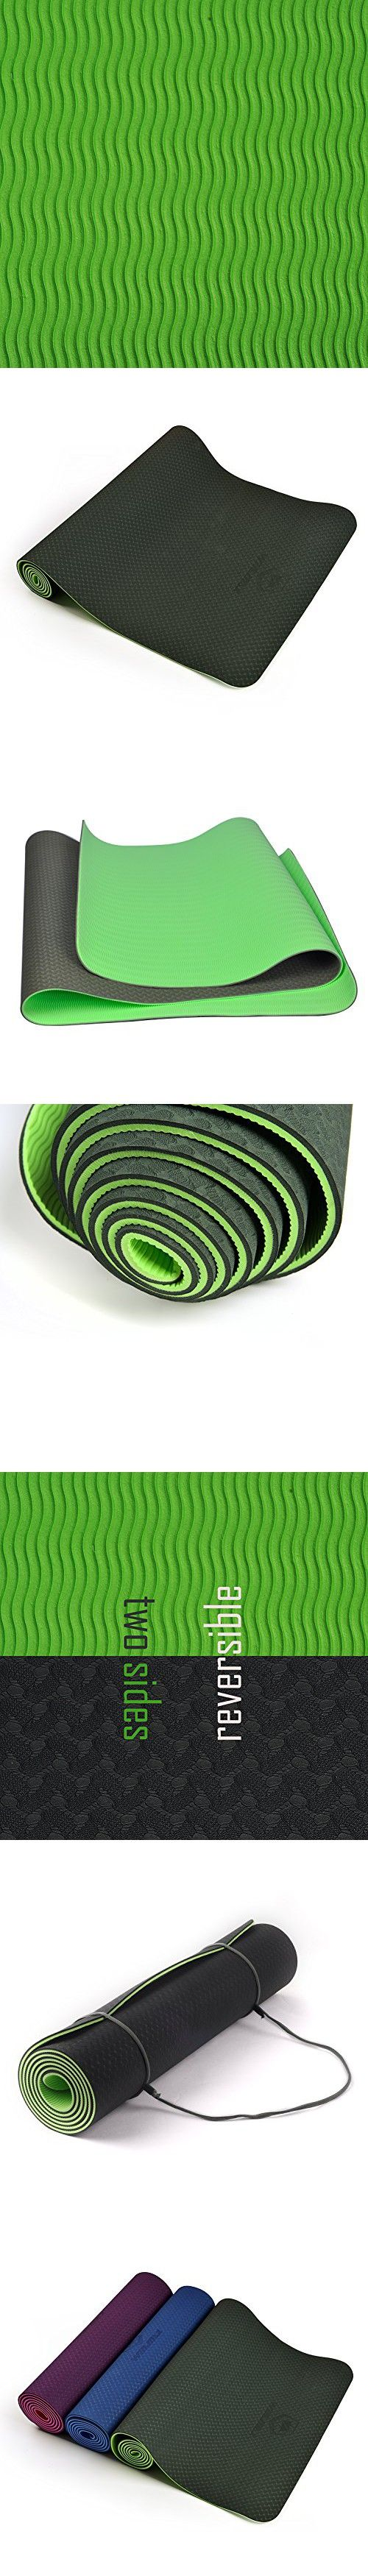 WinMax Anti-slip Eco-Friendly 6mm 1/4 inch TPE Fitness Yoga Mat with Carrying Strap (Green)